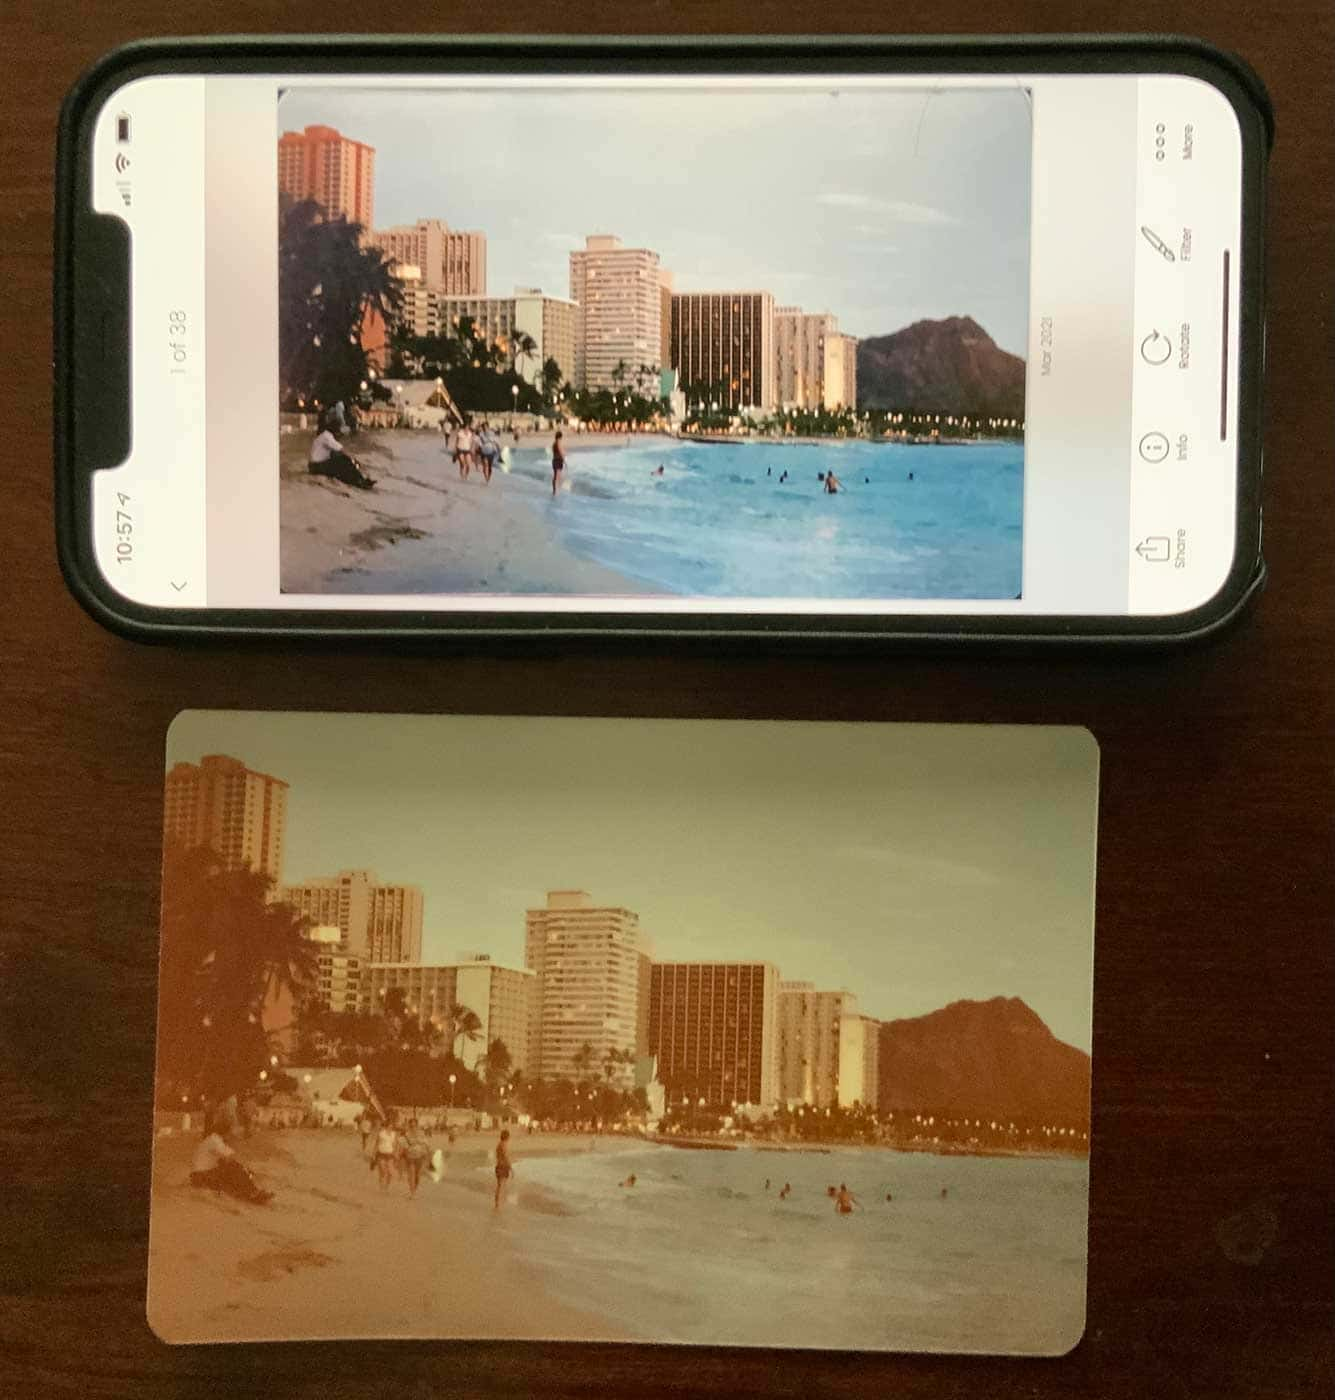 Photo Scanner Pro before (below) and after (above). The adjustments and cropping were done automatically.